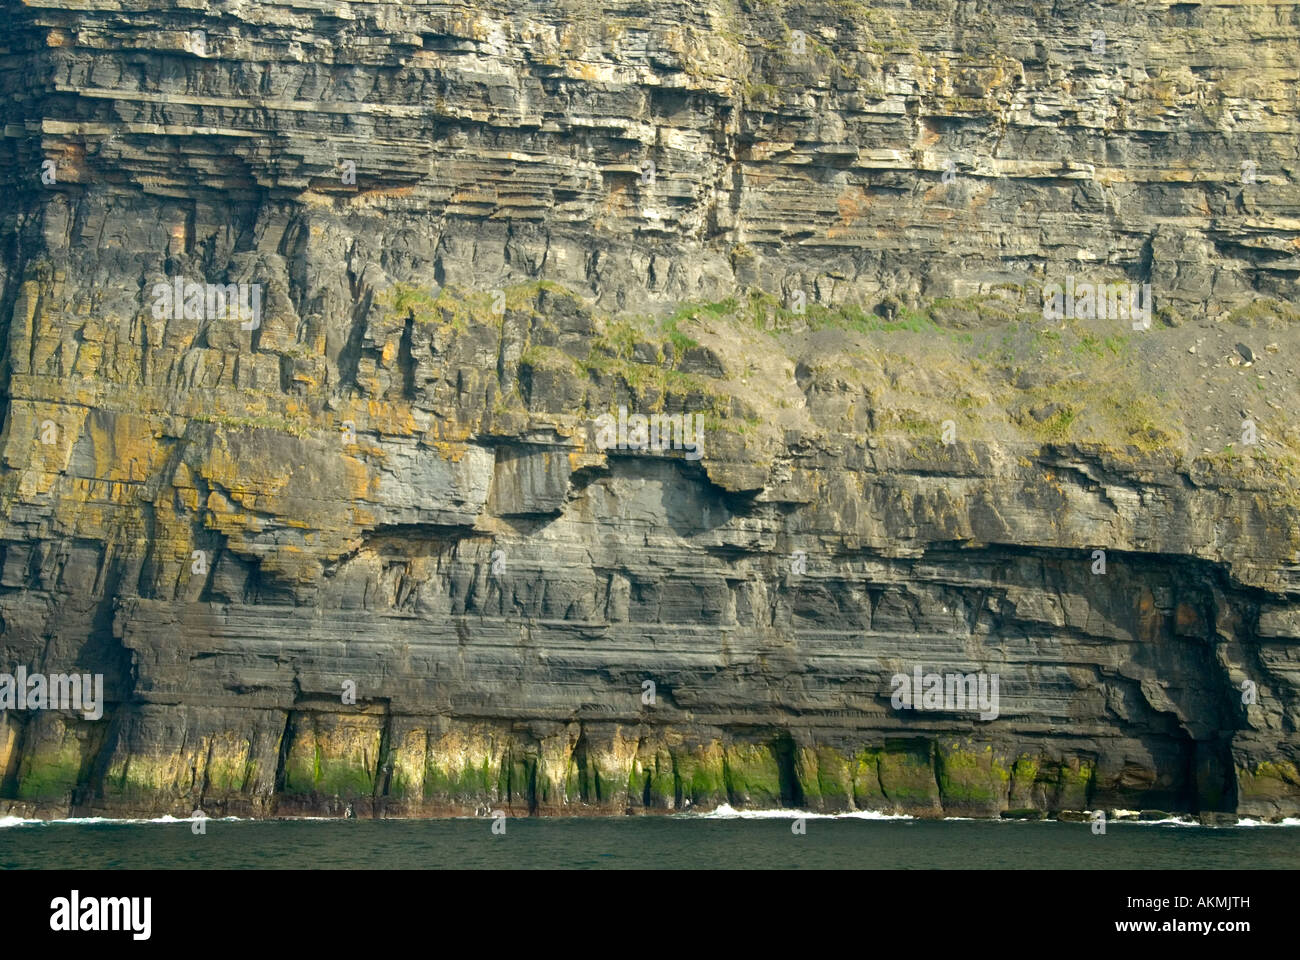 Unconformity in rock strata, Cliffs of Moher, County Clare, Ireland - Stock Image